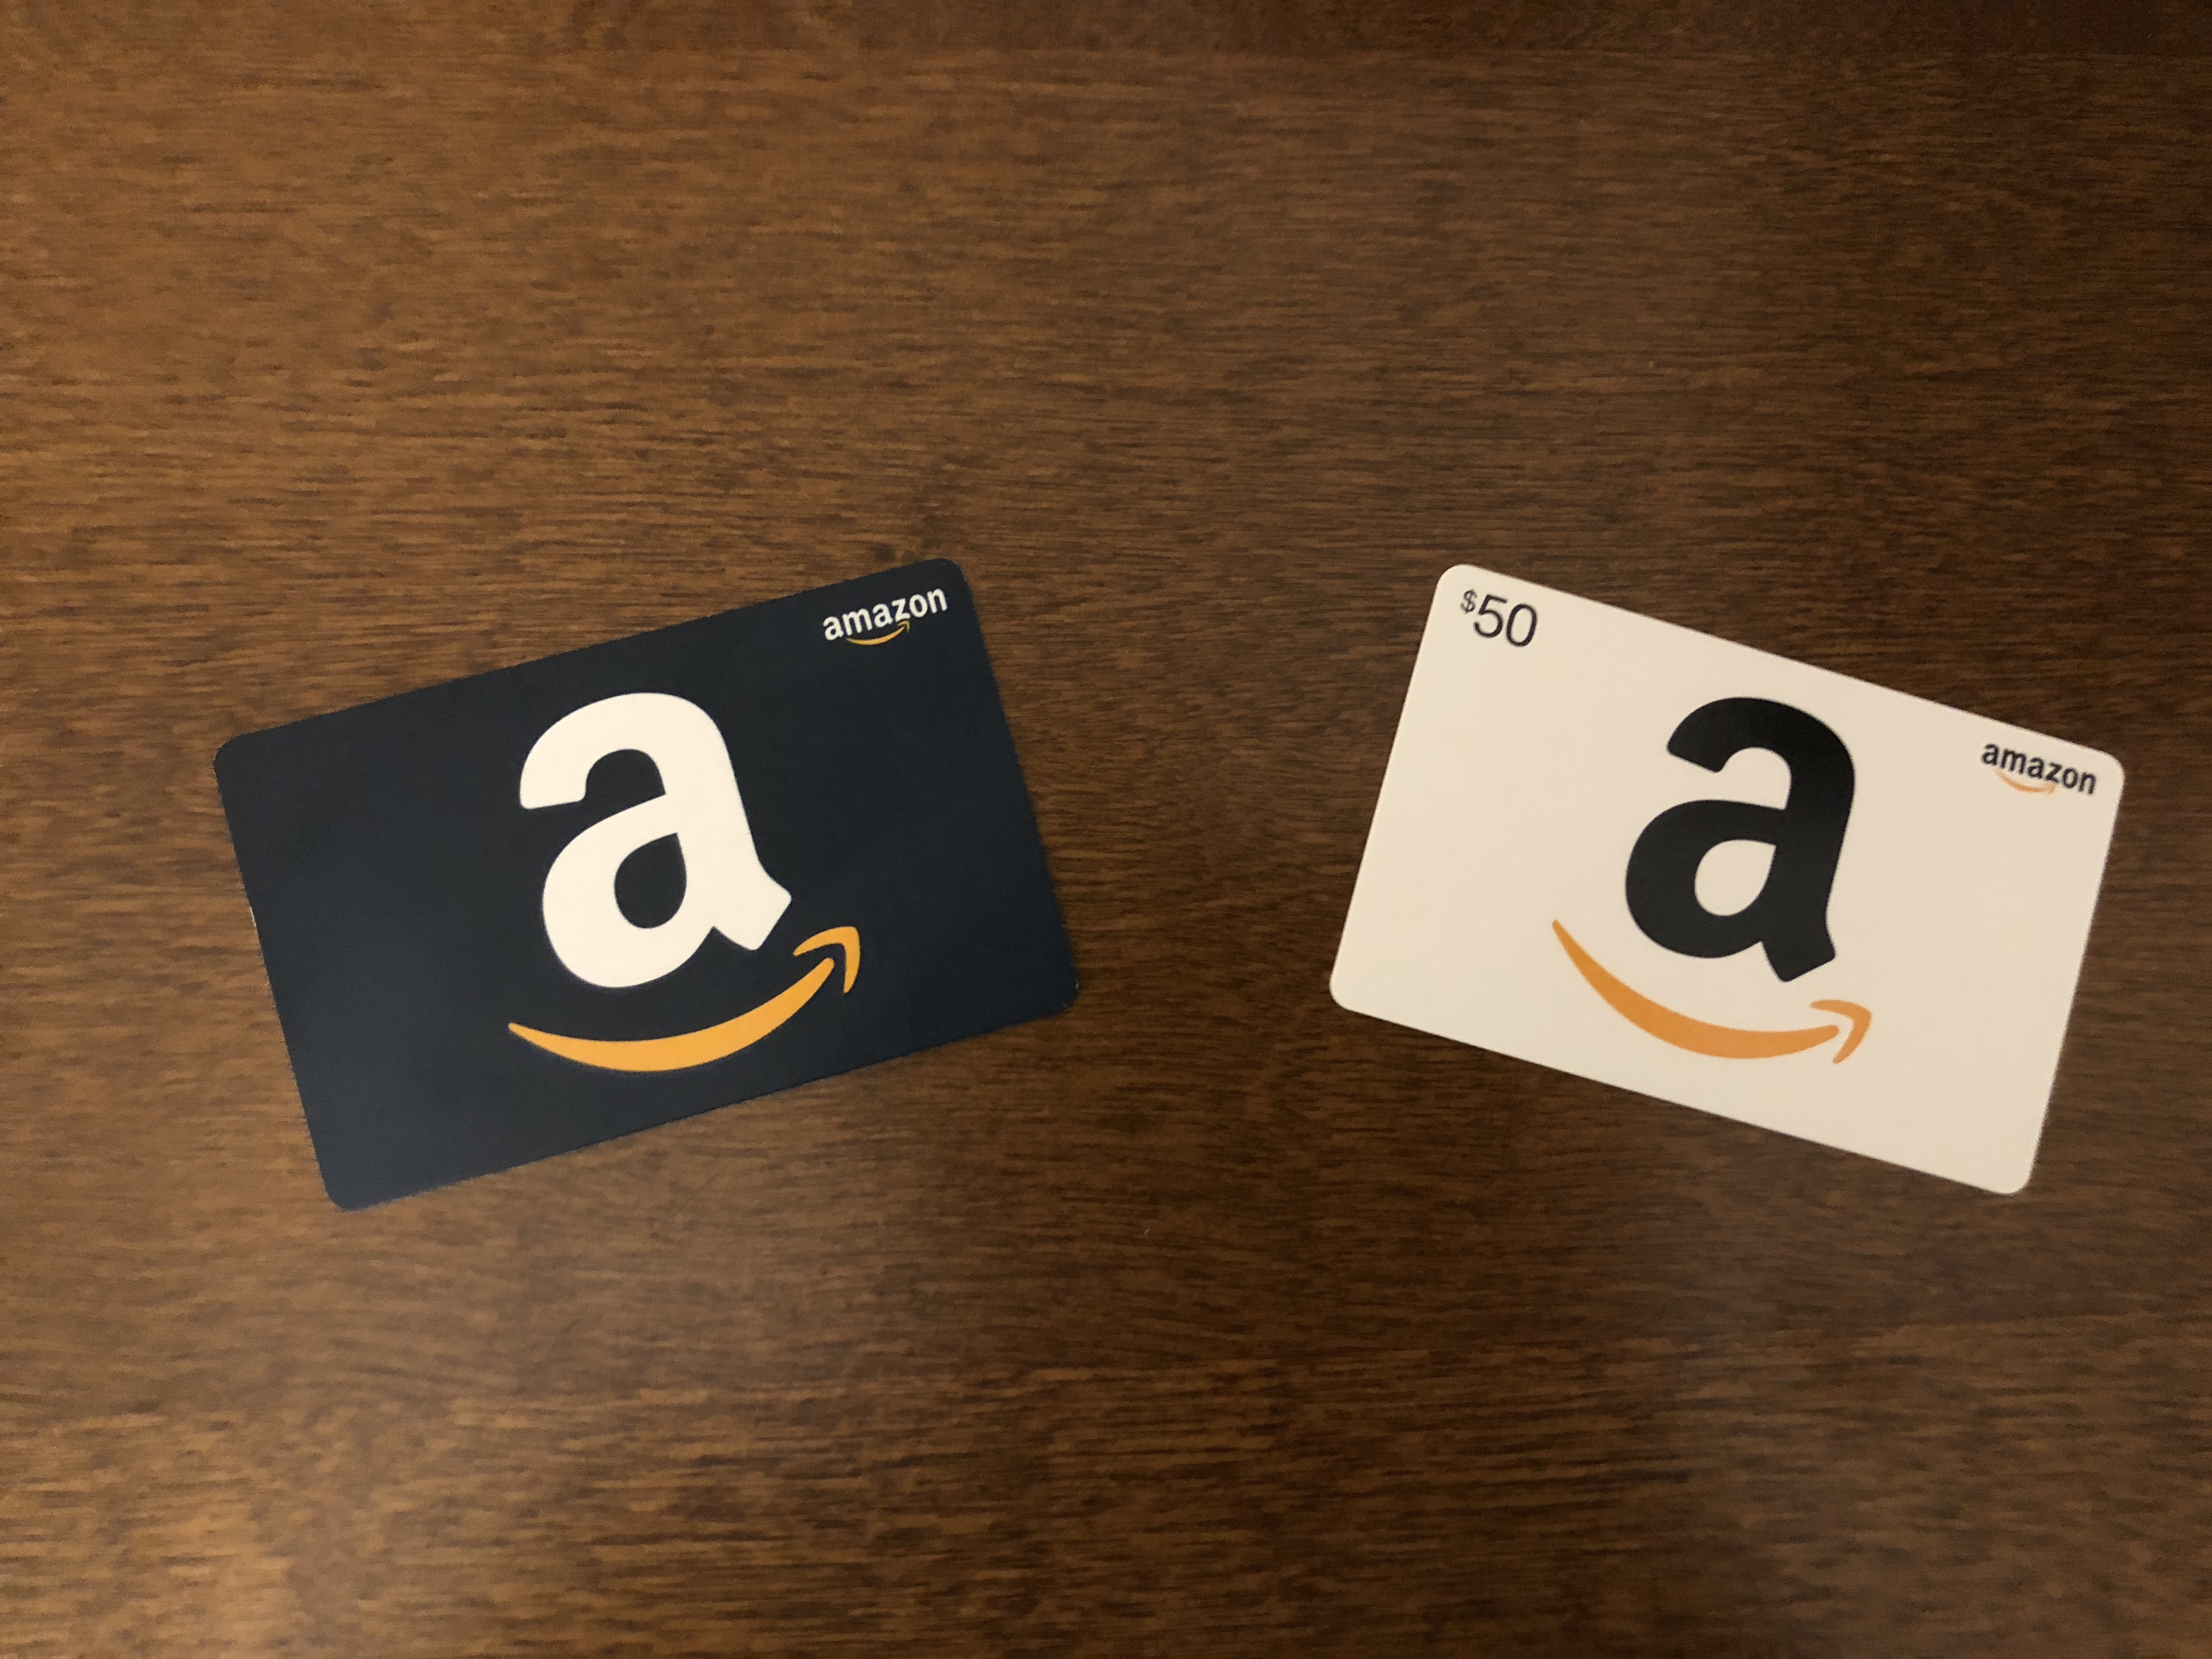 Emergency Awards in India's Arbitration Regime in the Wake of the Amazon-Future Retail Dispute